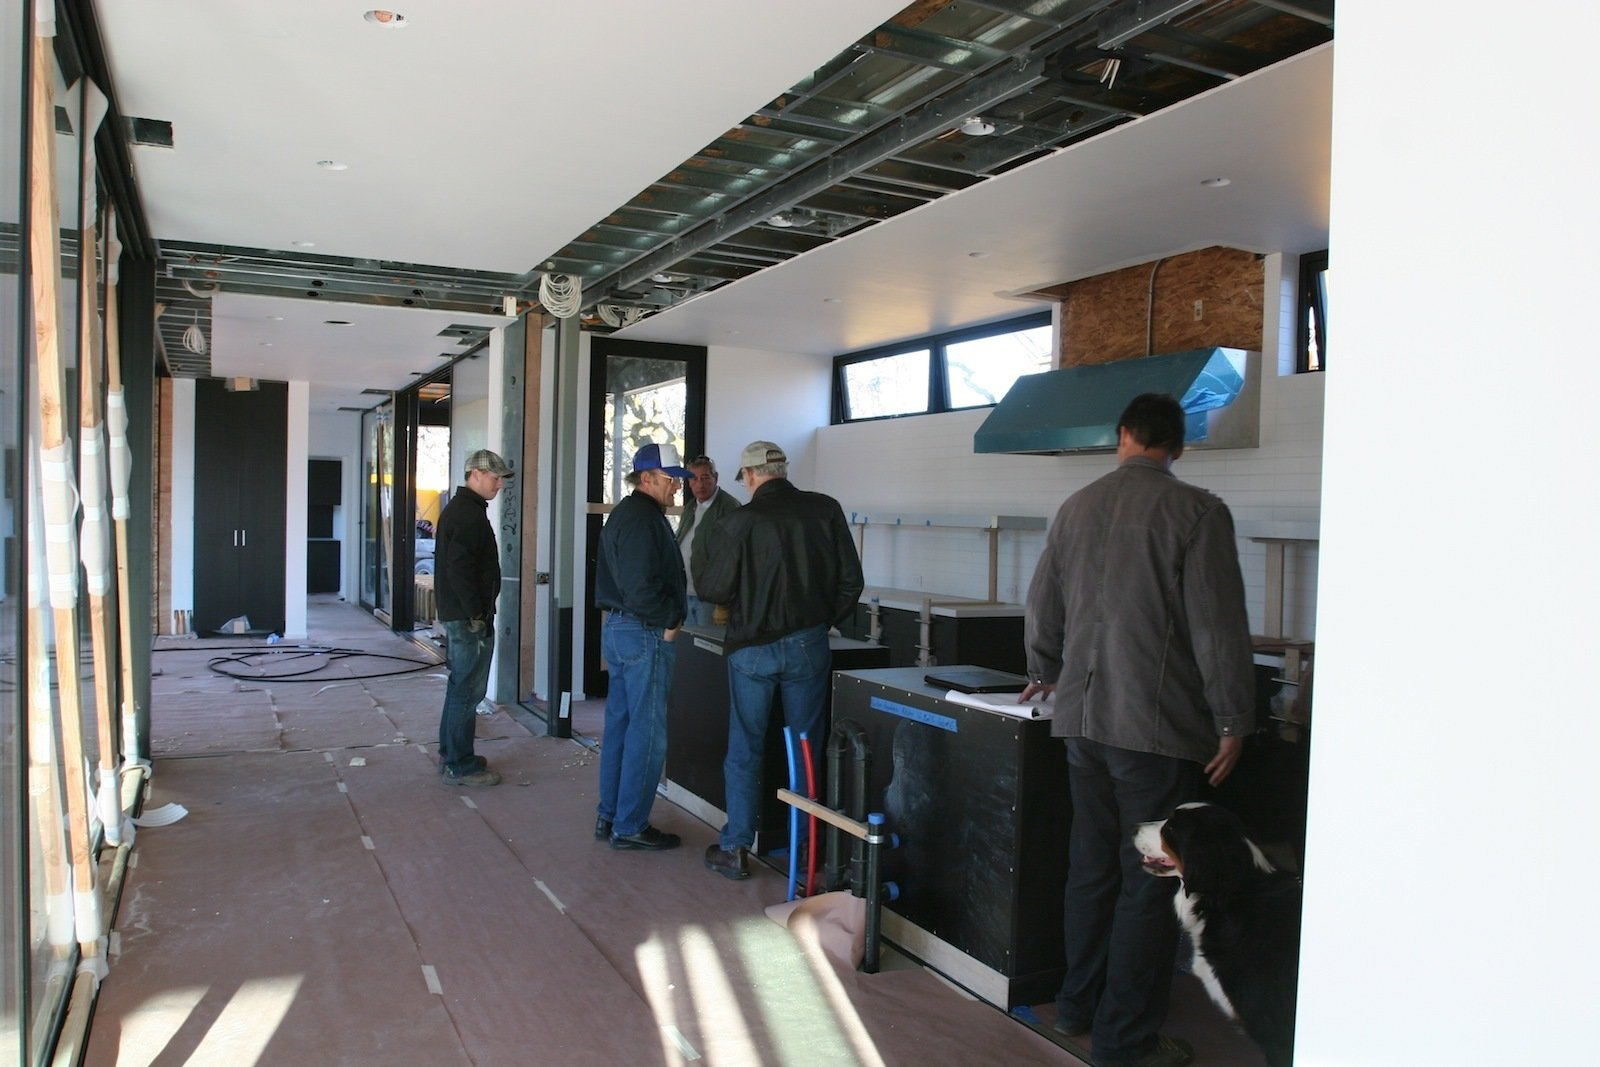 """At the end of the day, Abbie, Stella and some of the Marmol Radziner staff gathered in the kitchen. """"You can see the range hood in the background, the white tiled back wall of the kitchen, and seam in the ceiling where the two modules are joined,"""" says Bill.  Building a Prefab House by Jaime Gillin"""